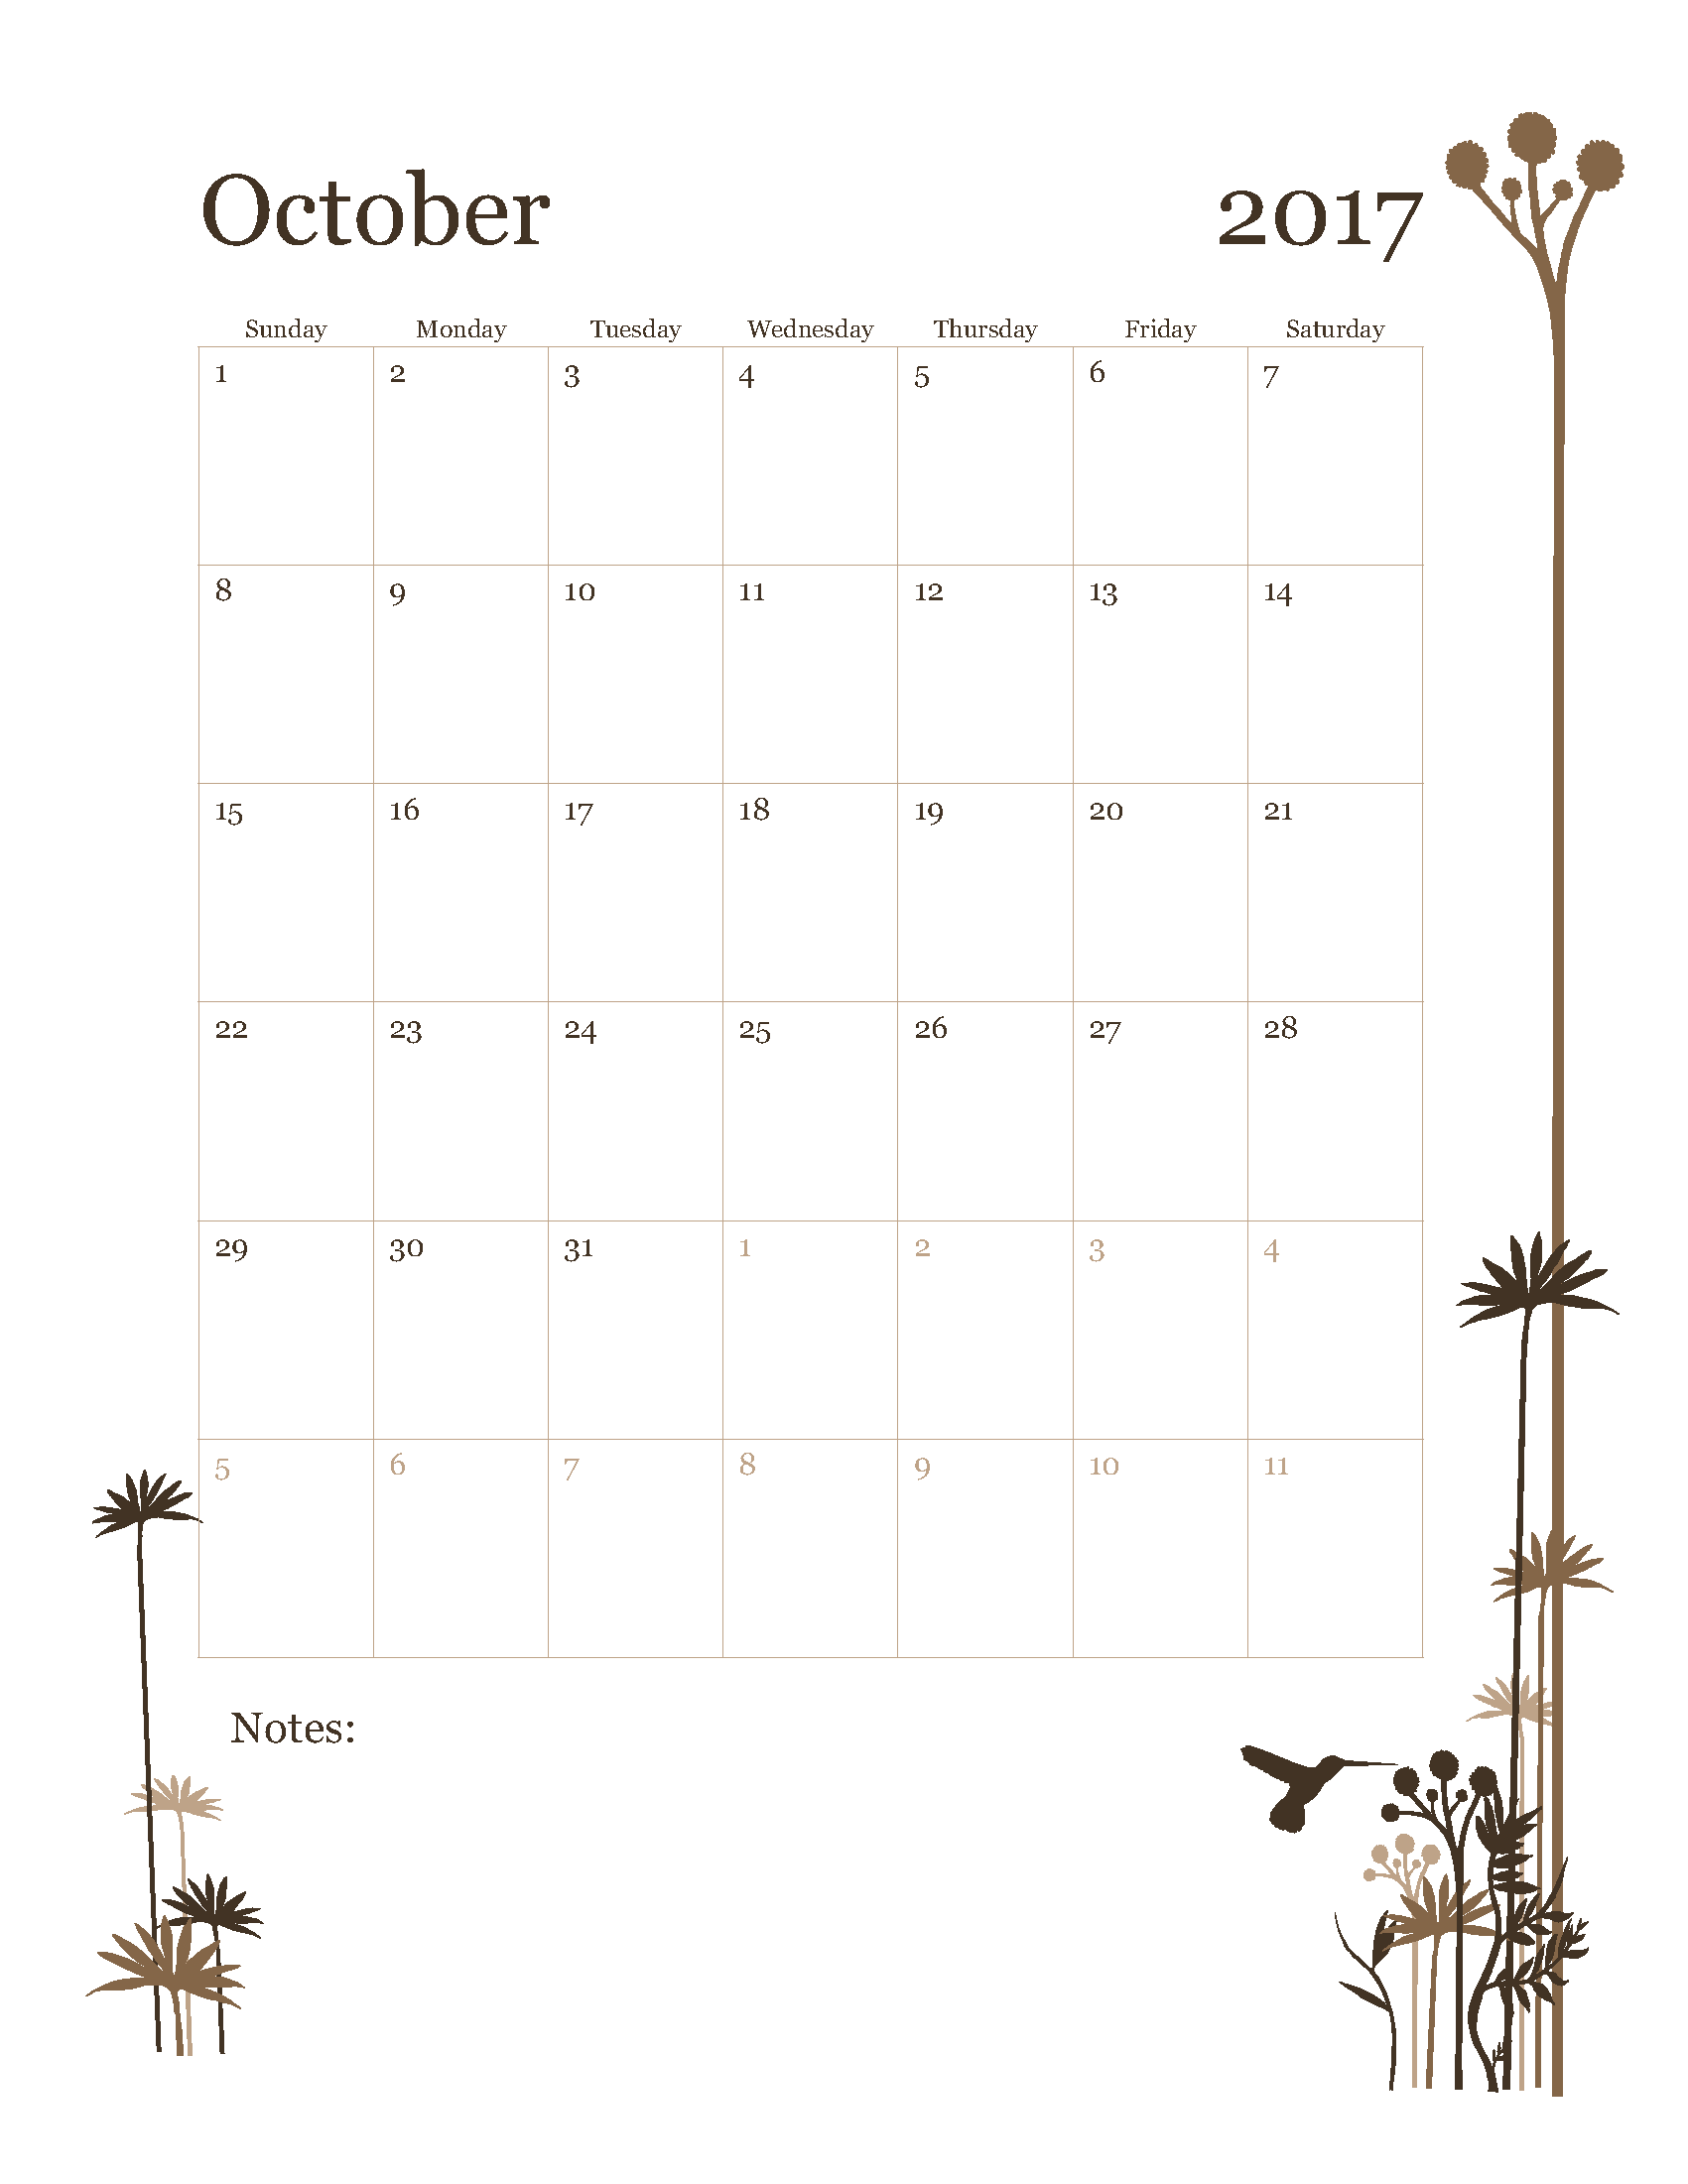 Free October 2017 Calendar Template Printable Start on Sunday - HummingBird design